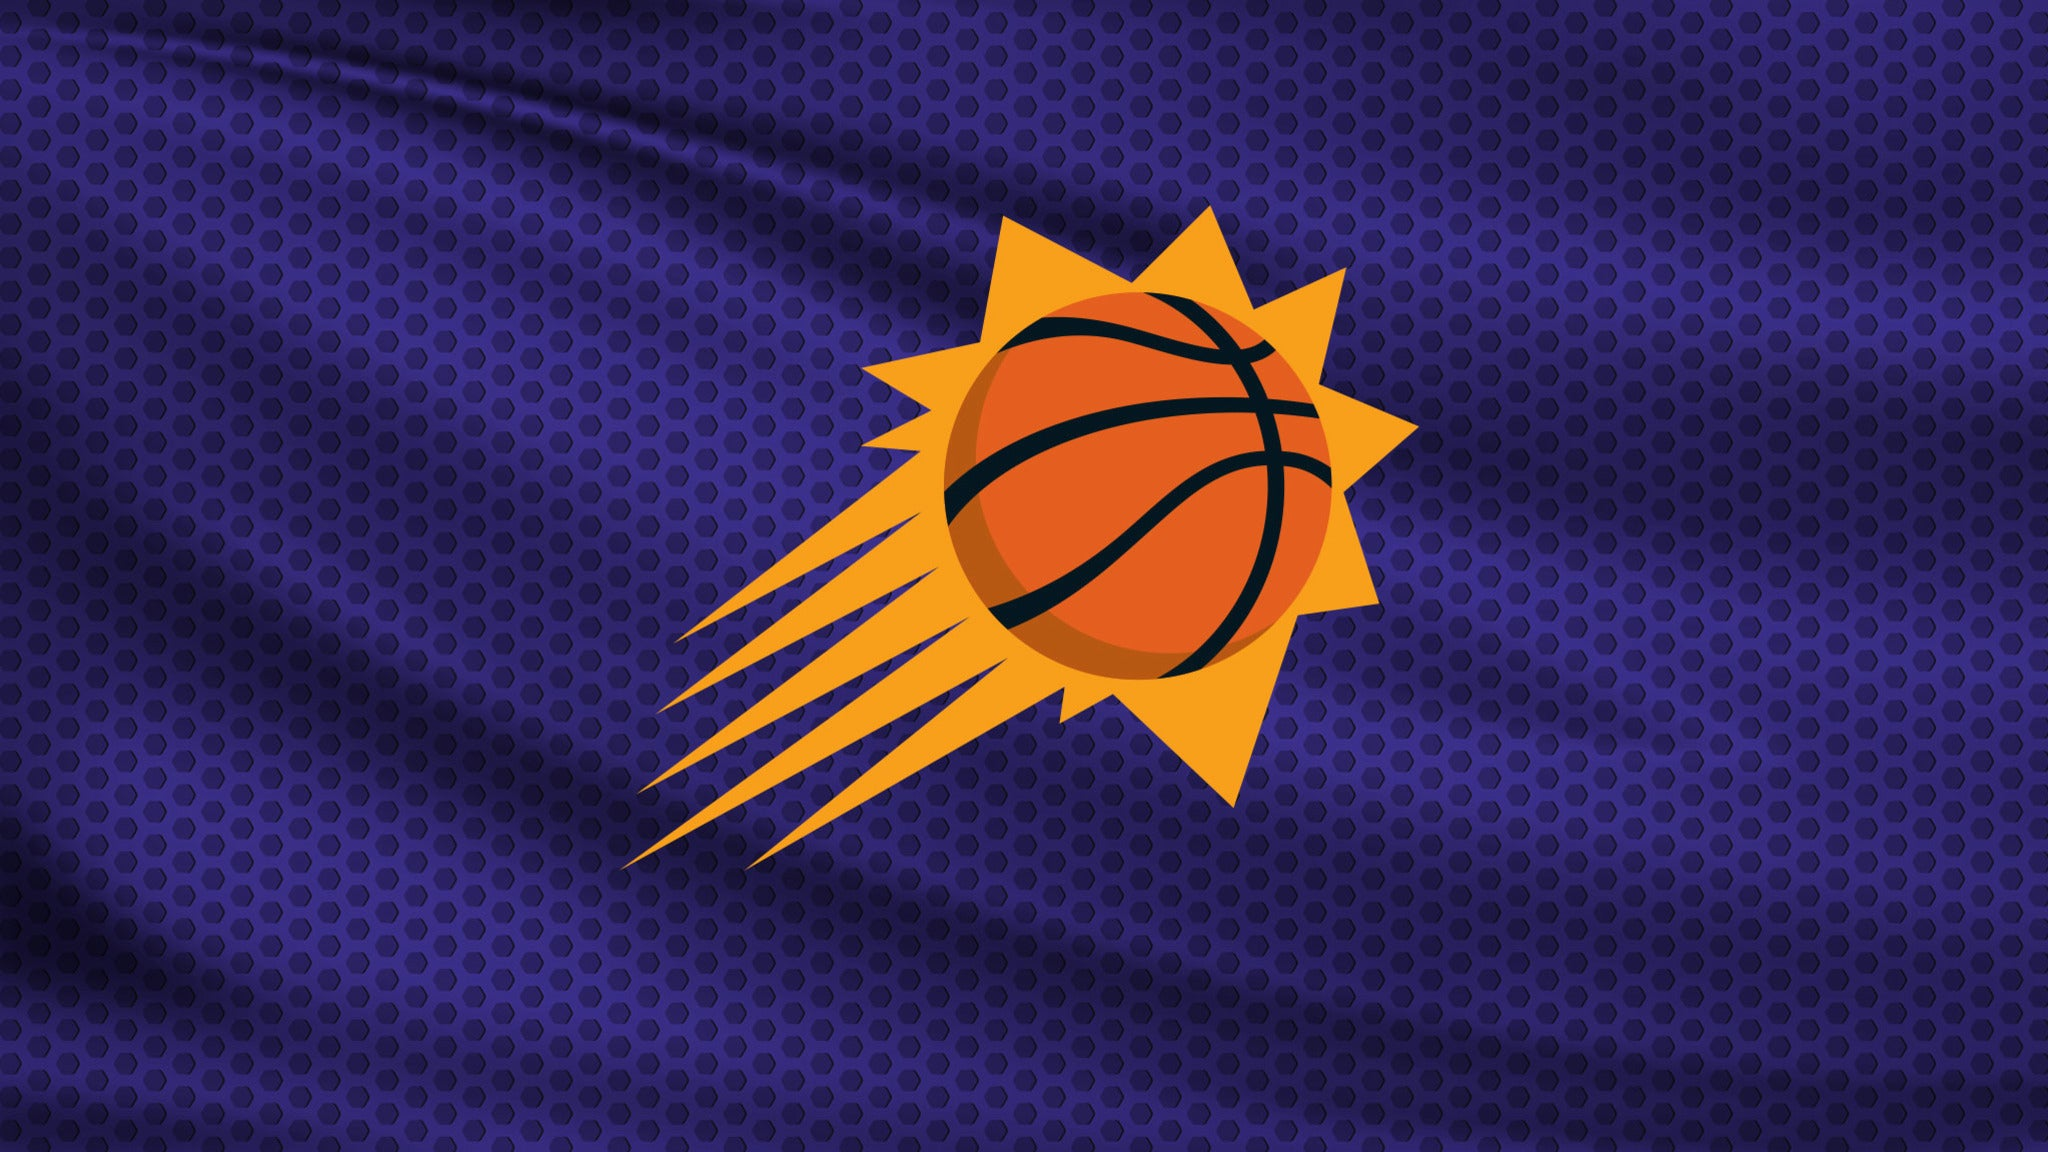 SORRY, THIS EVENT IS NO LONGER ACTIVE<br>Phoenix Suns vs. Houston Rockets - Phoenix, AZ 85004